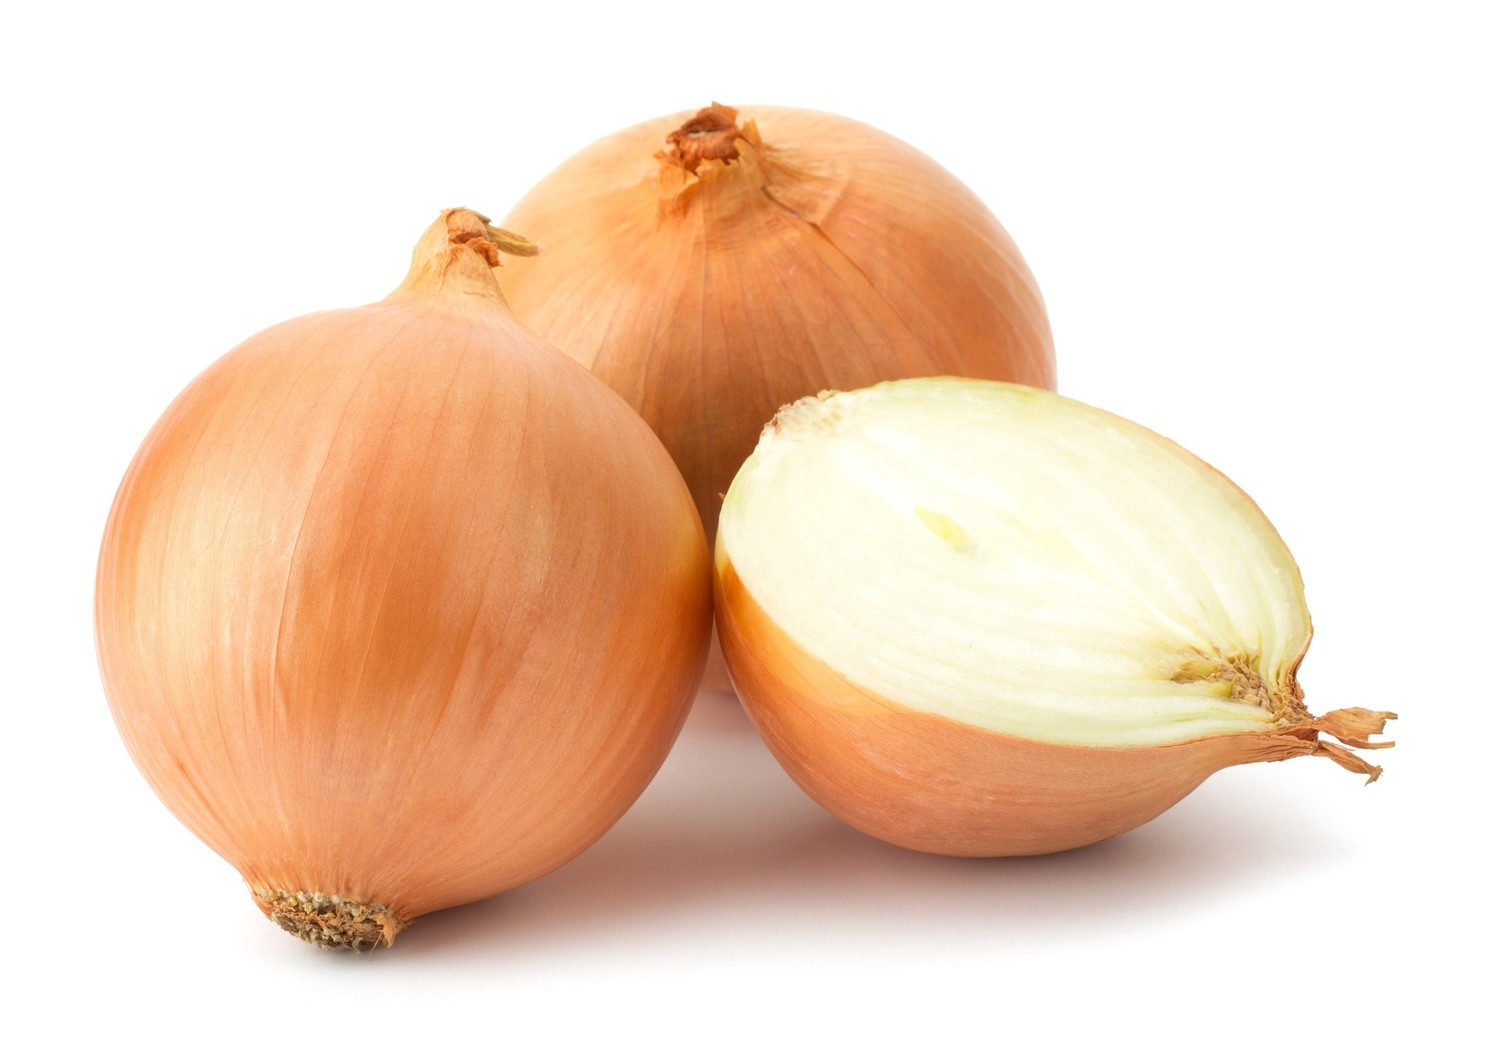 Produce,  Vegetable, Onion, Yellow Onion, Priced Each